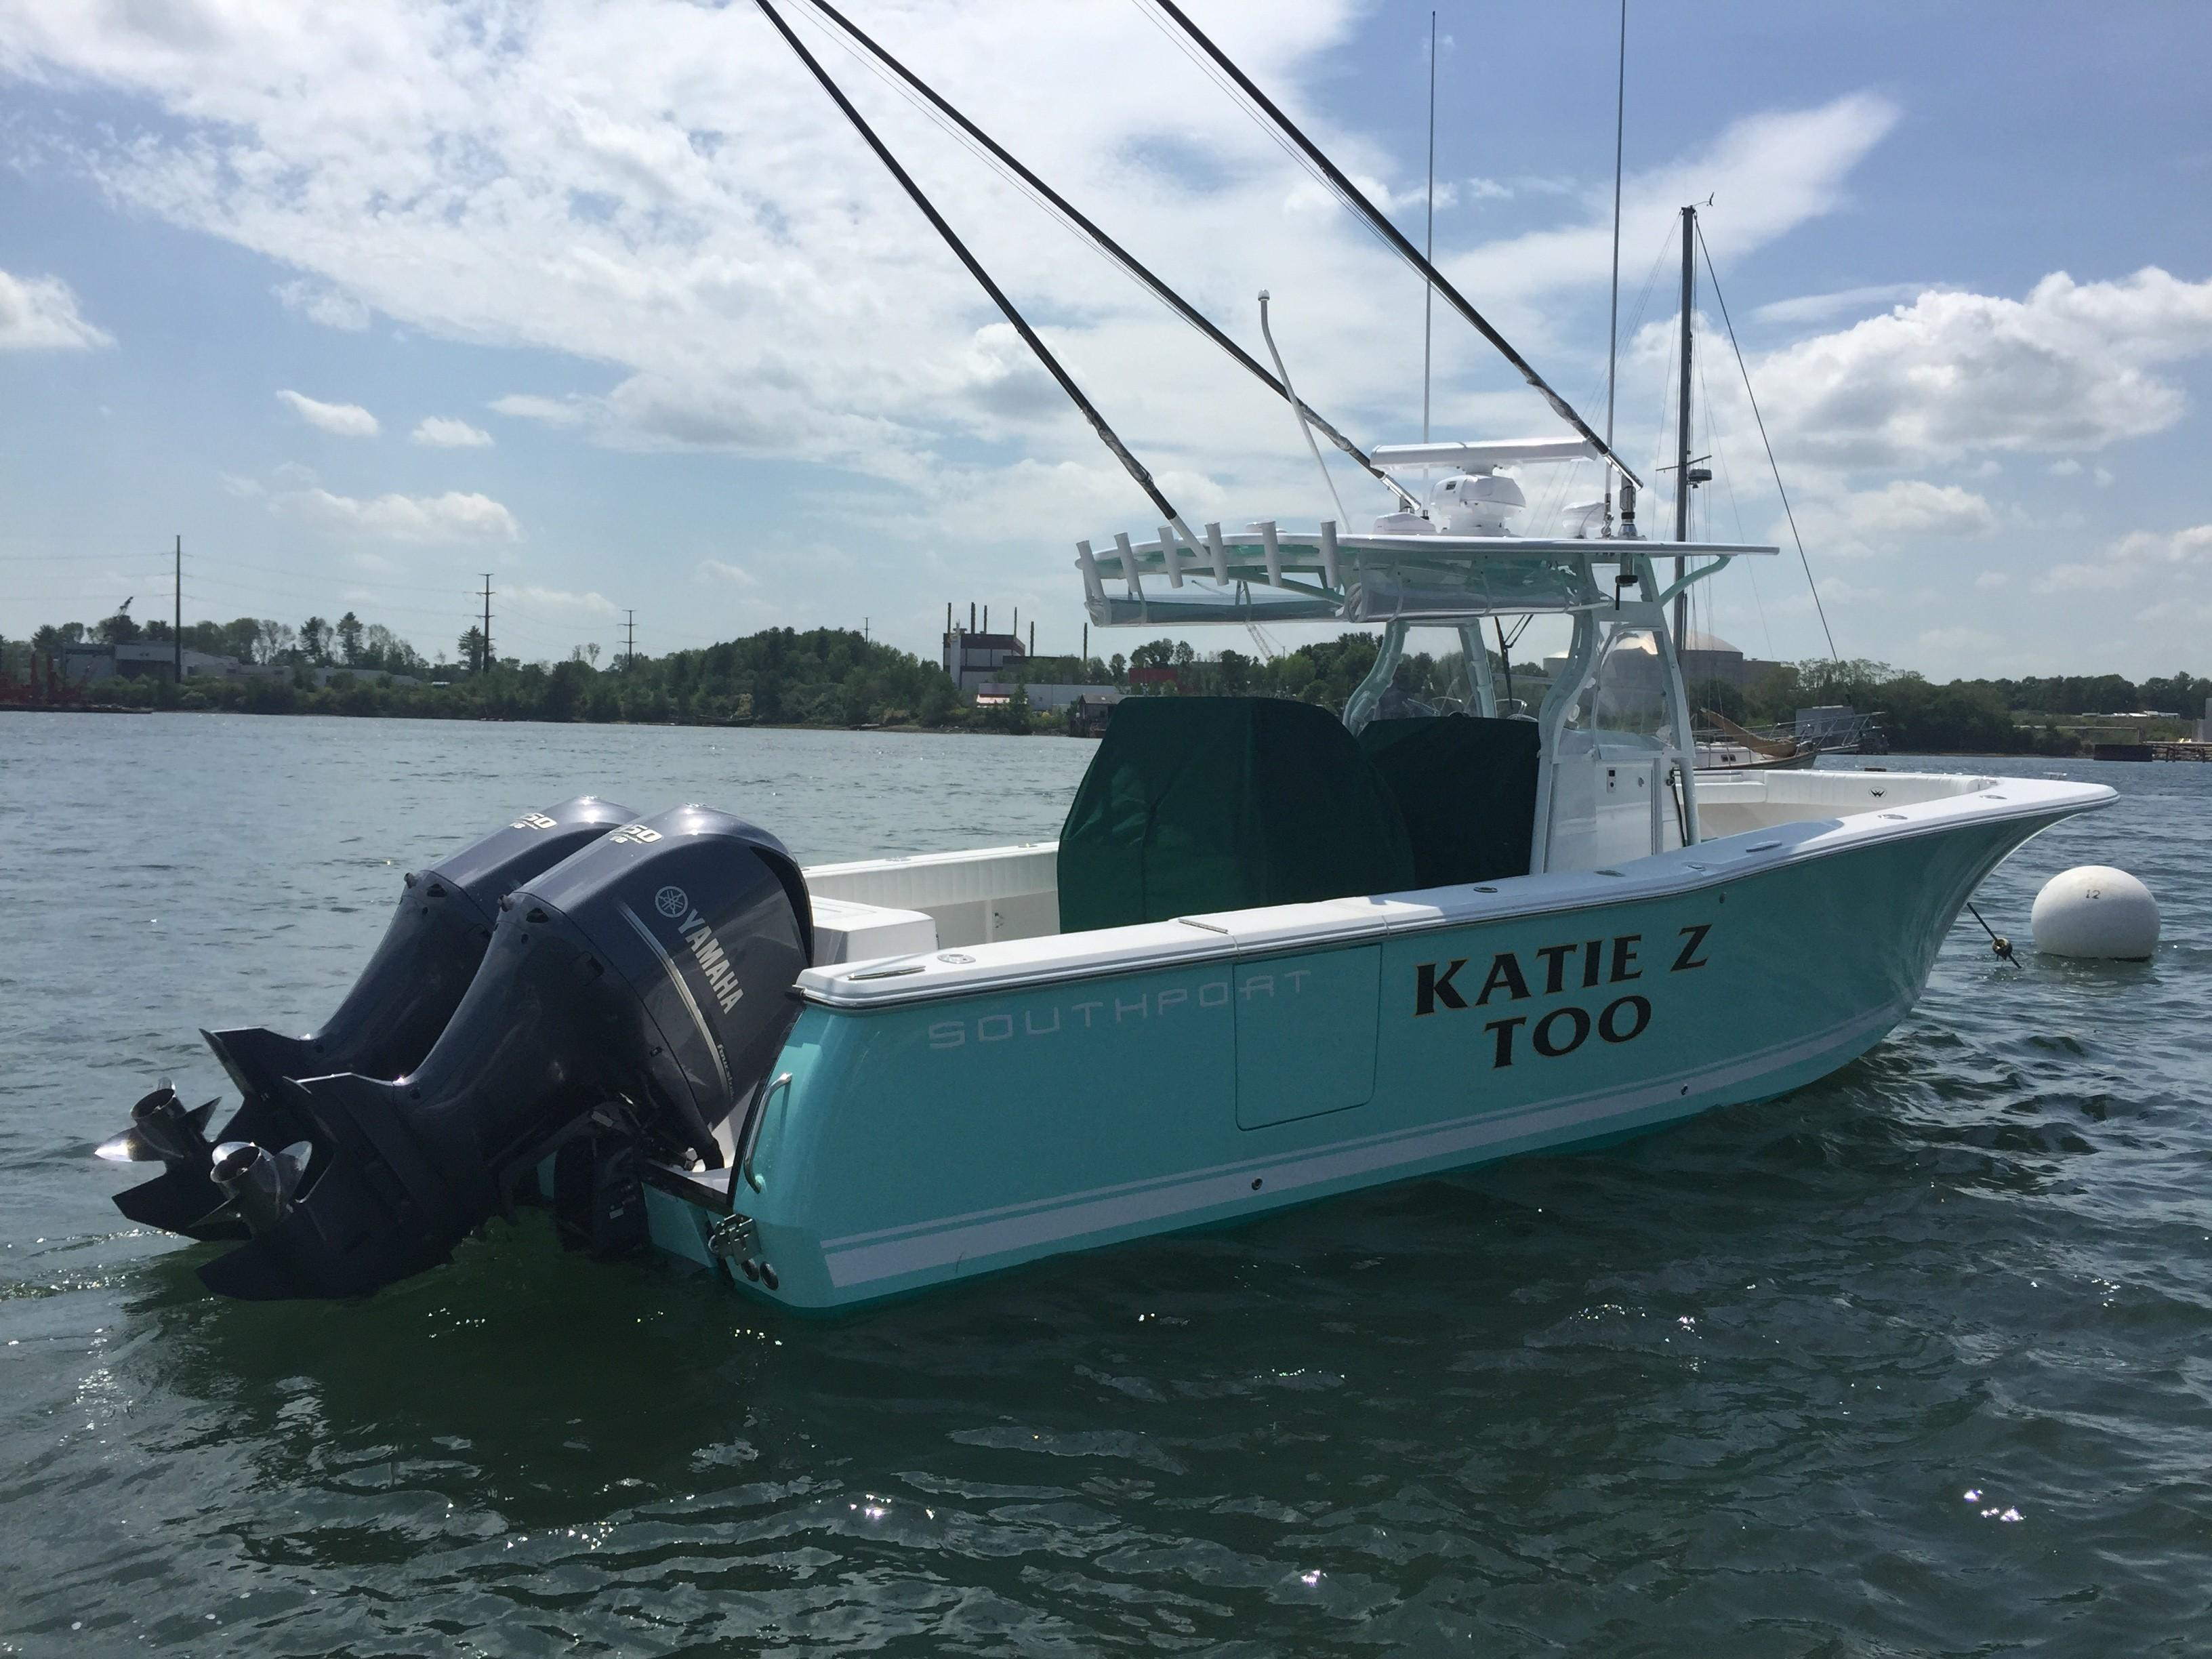 Used Southport Boats for Sale - MLS Search